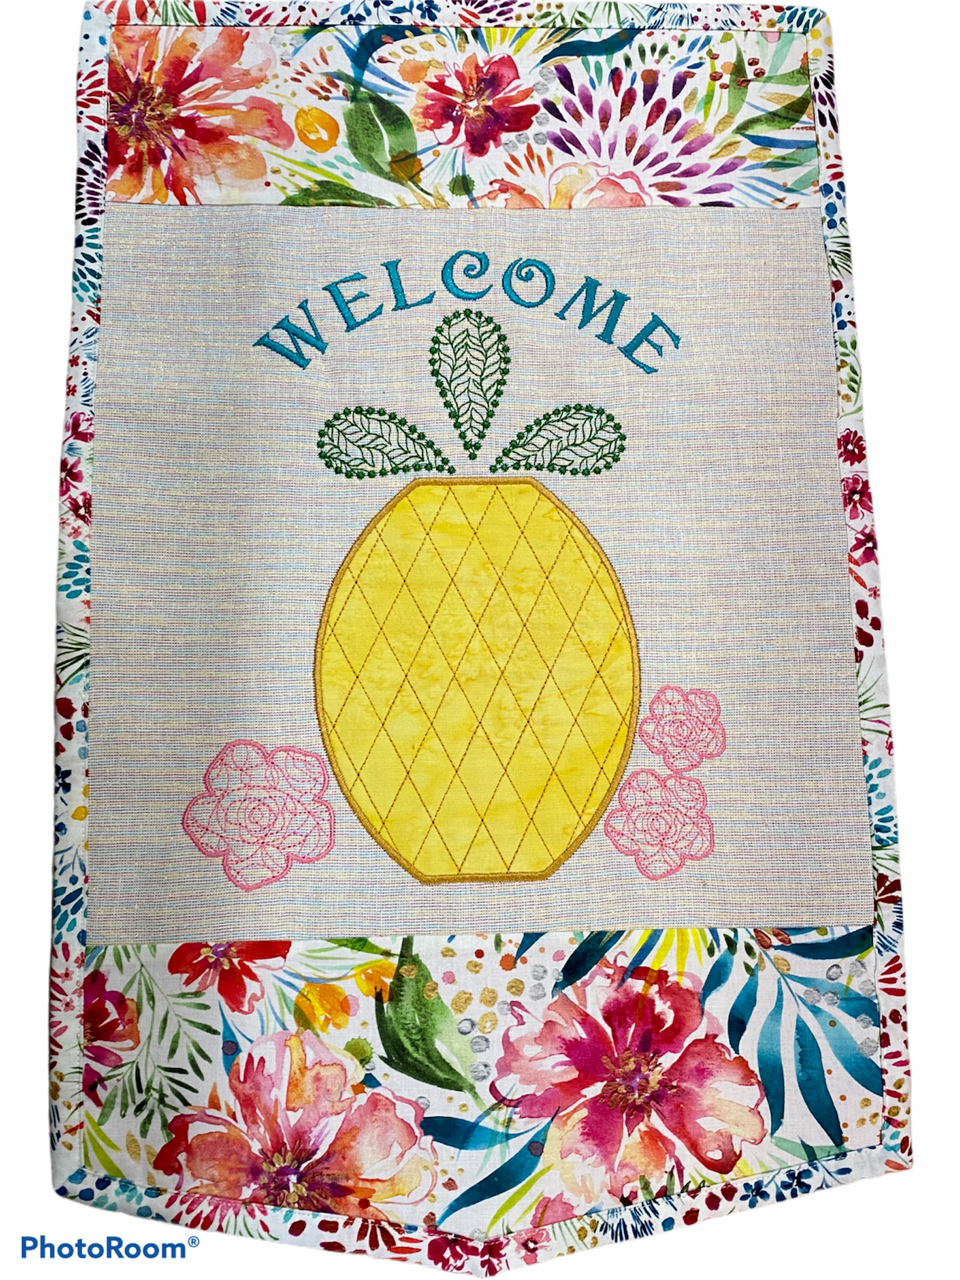 IQ Designer Directions - Welcome Pineapple for the Solaris - Create an applique & work with fancy fills and lettering